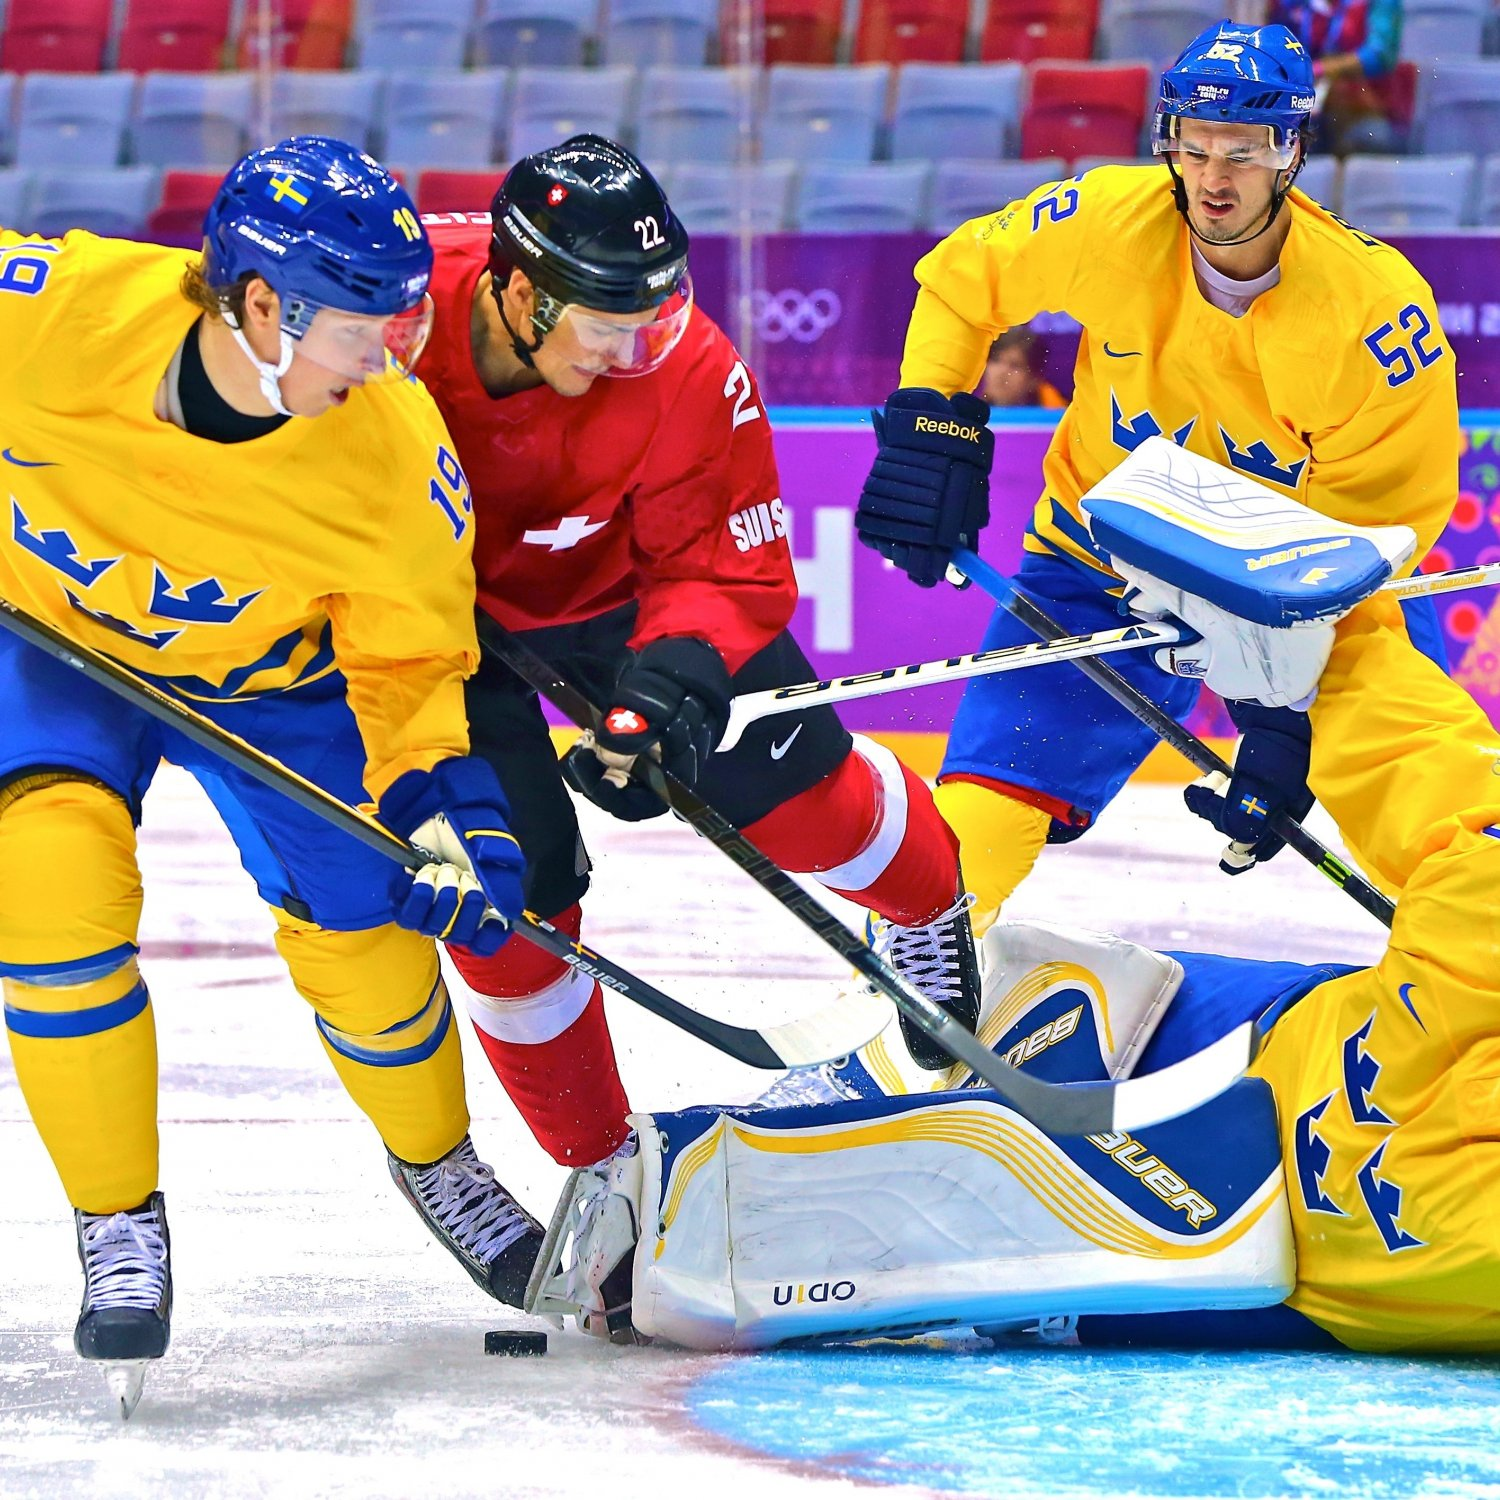 Sweden vs. Switzerland Olympic Hockey 2014: Live Score, Highlights and ...